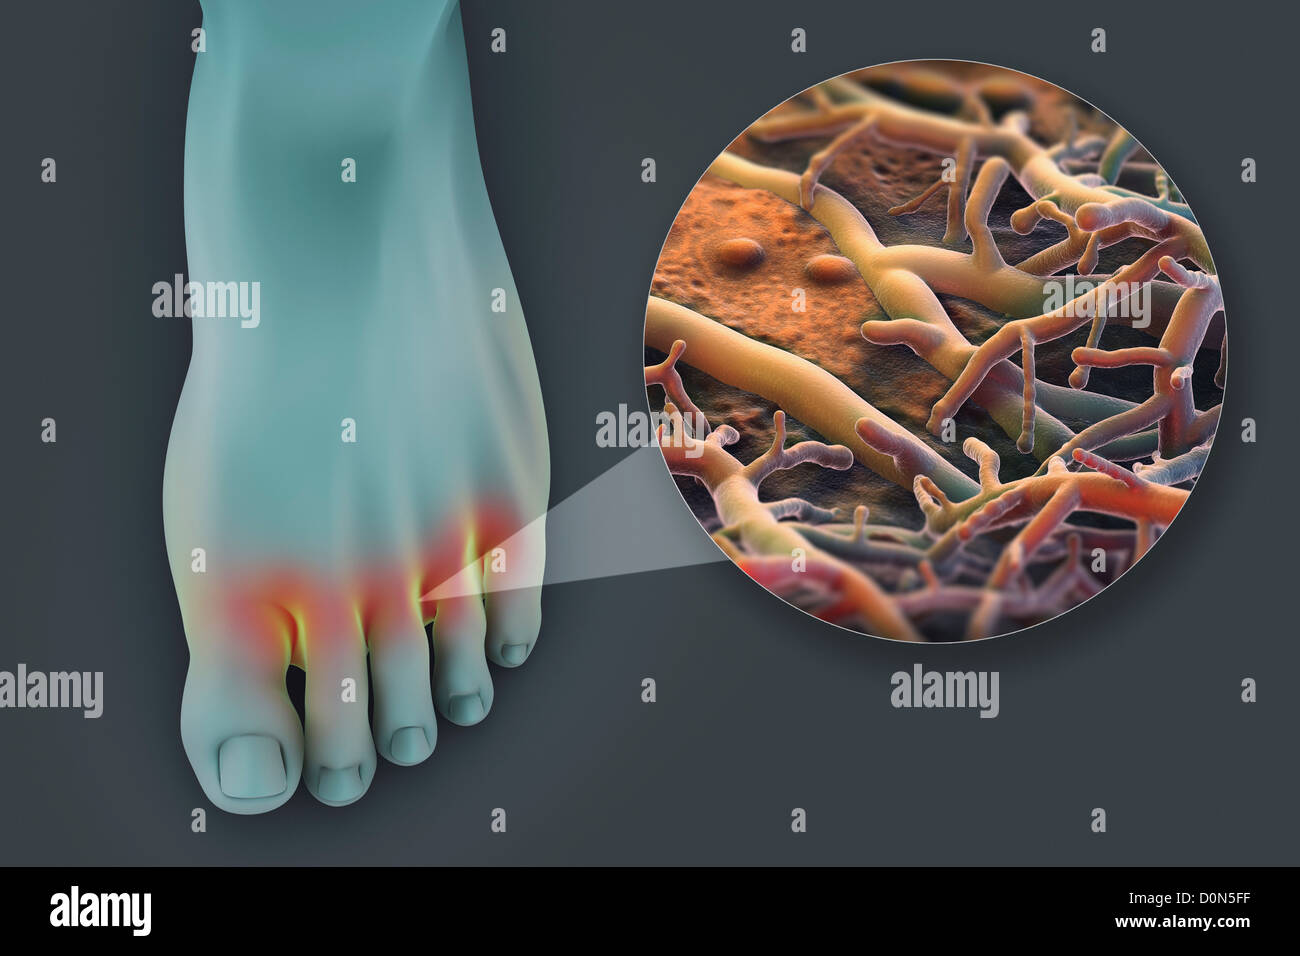 A left foot glowing appearance. foot is highlighted represent presence fungal infection known as Athlete's foot. - Stock Image